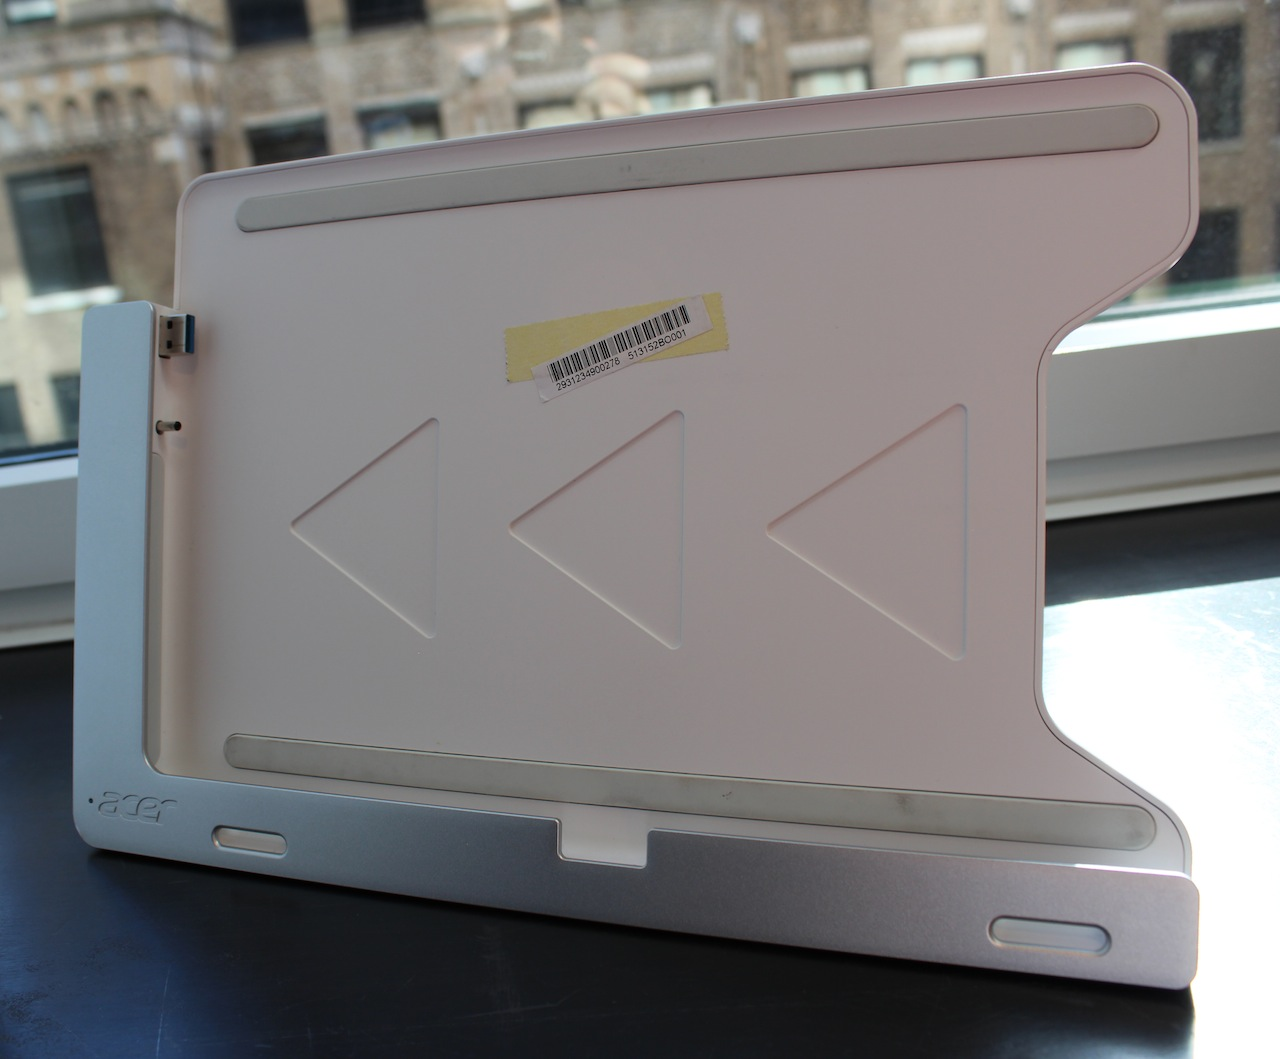 The W700's included cradle is ideal for kitchen counters or desks if you'd like to dock the tablet.